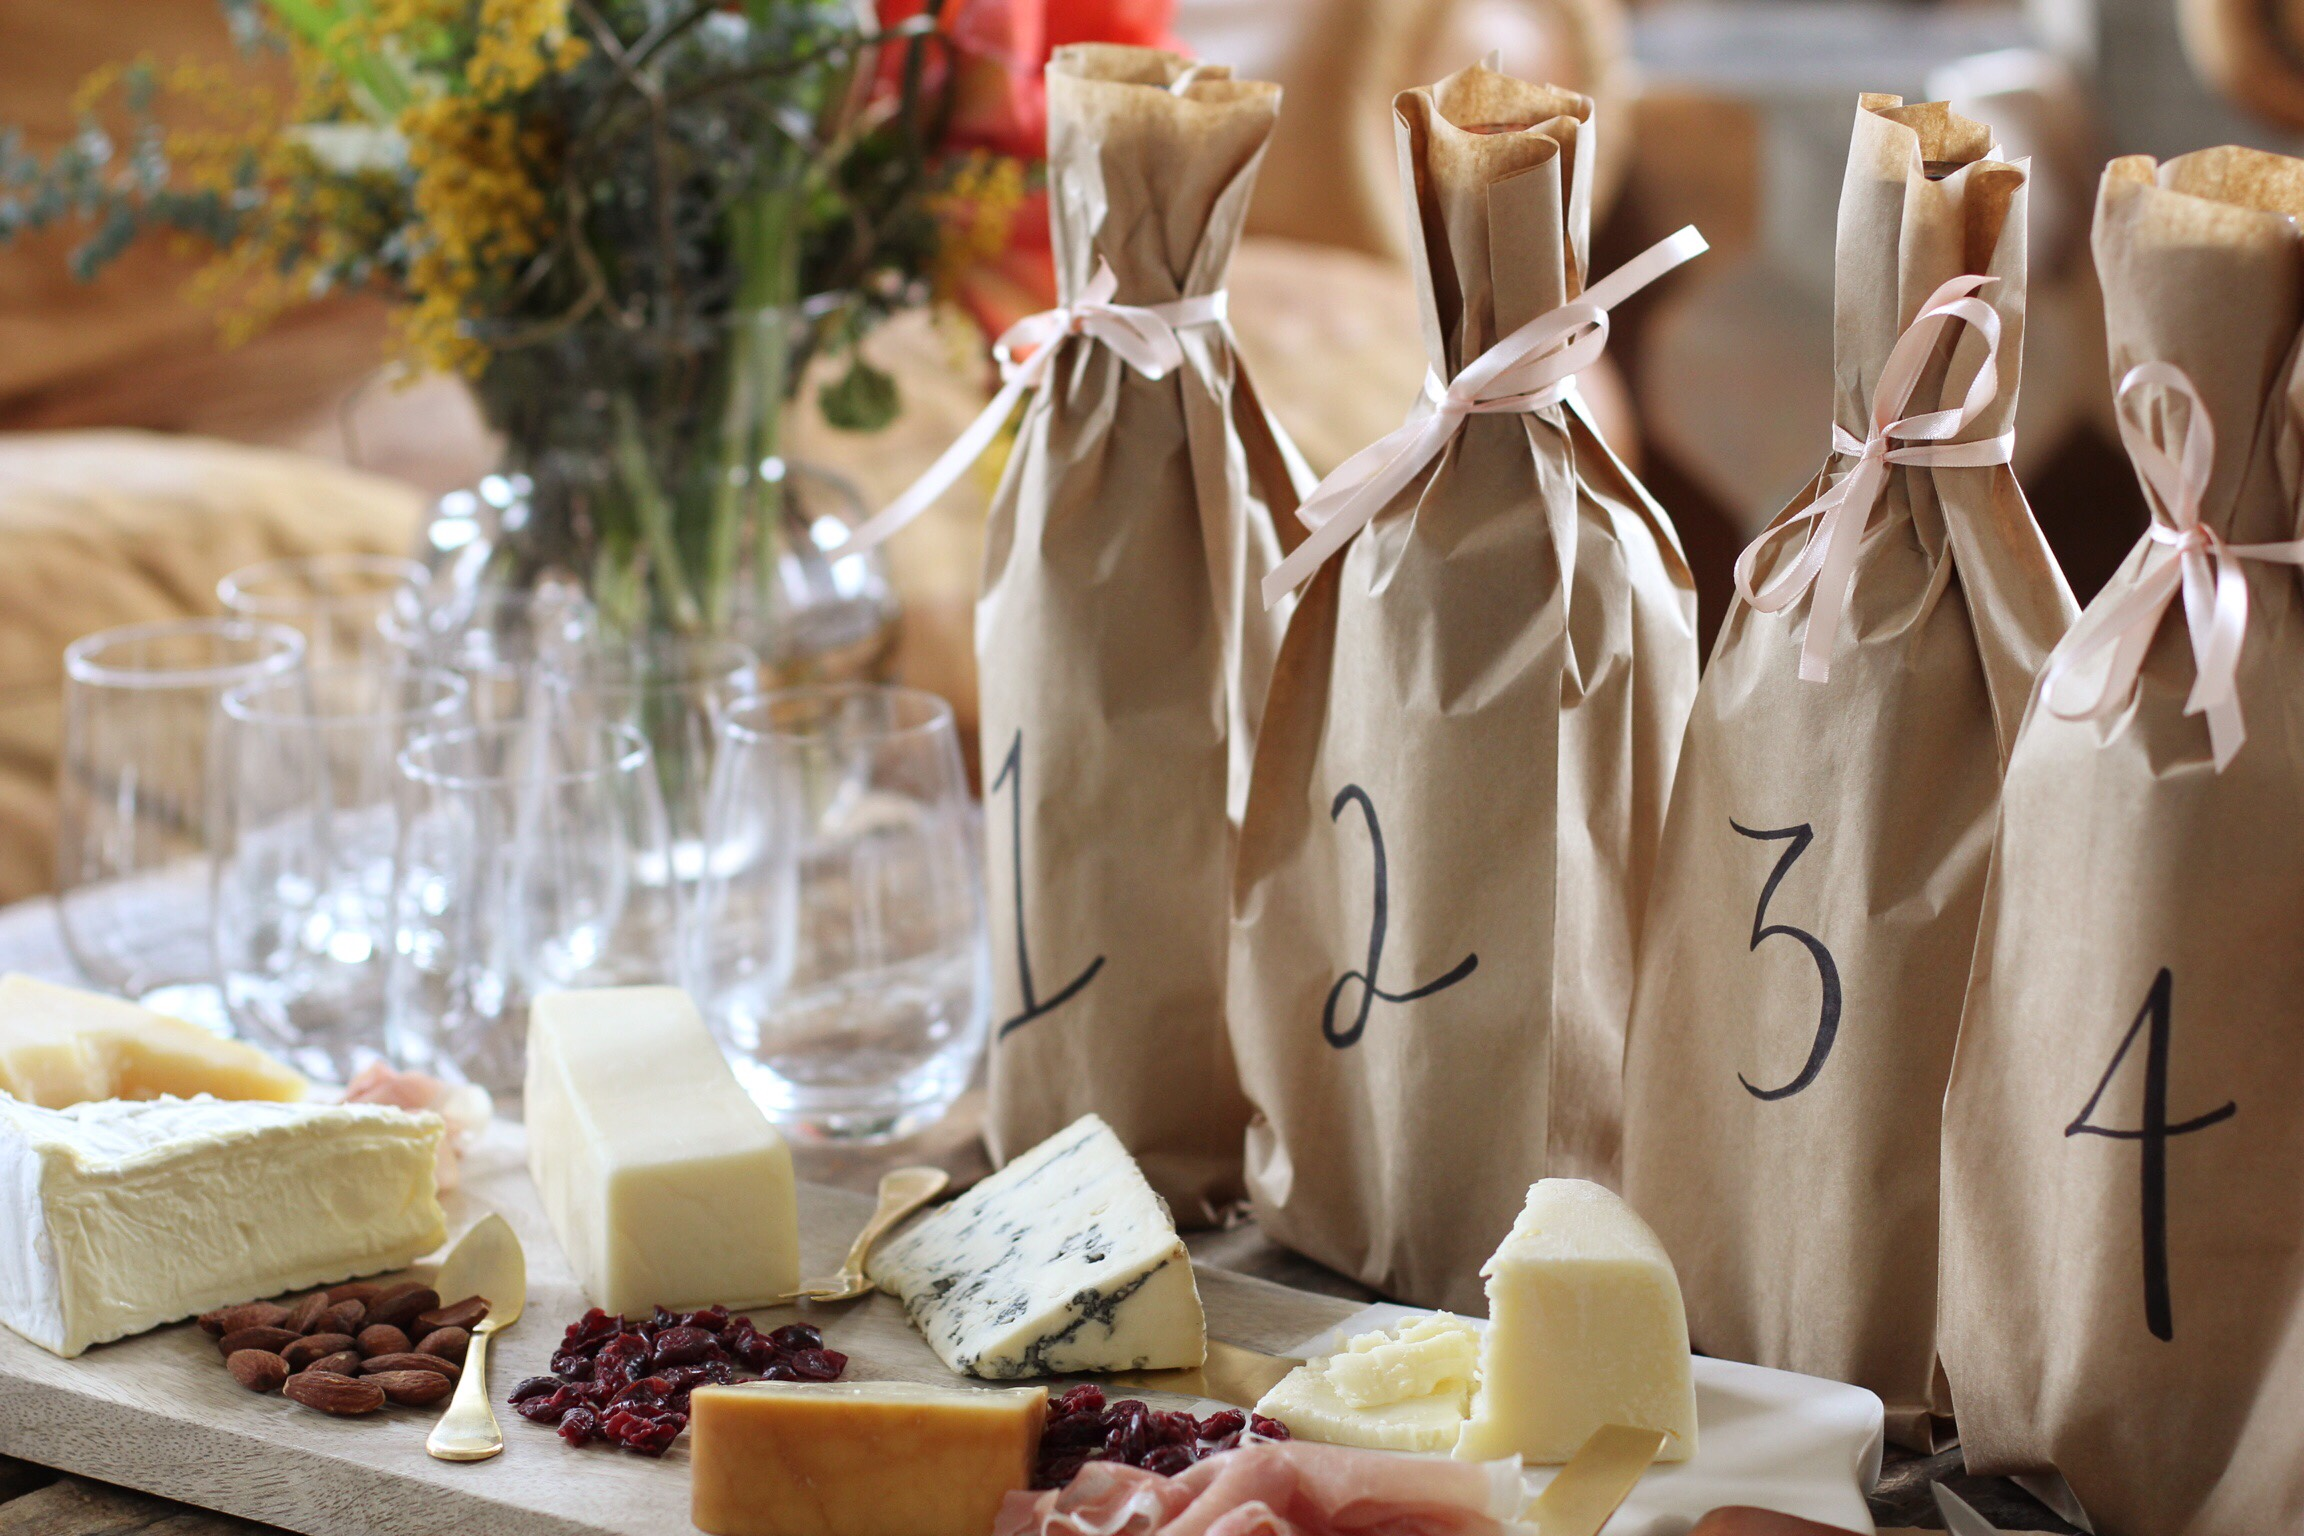 Blind wine tasting party - The Pastiche